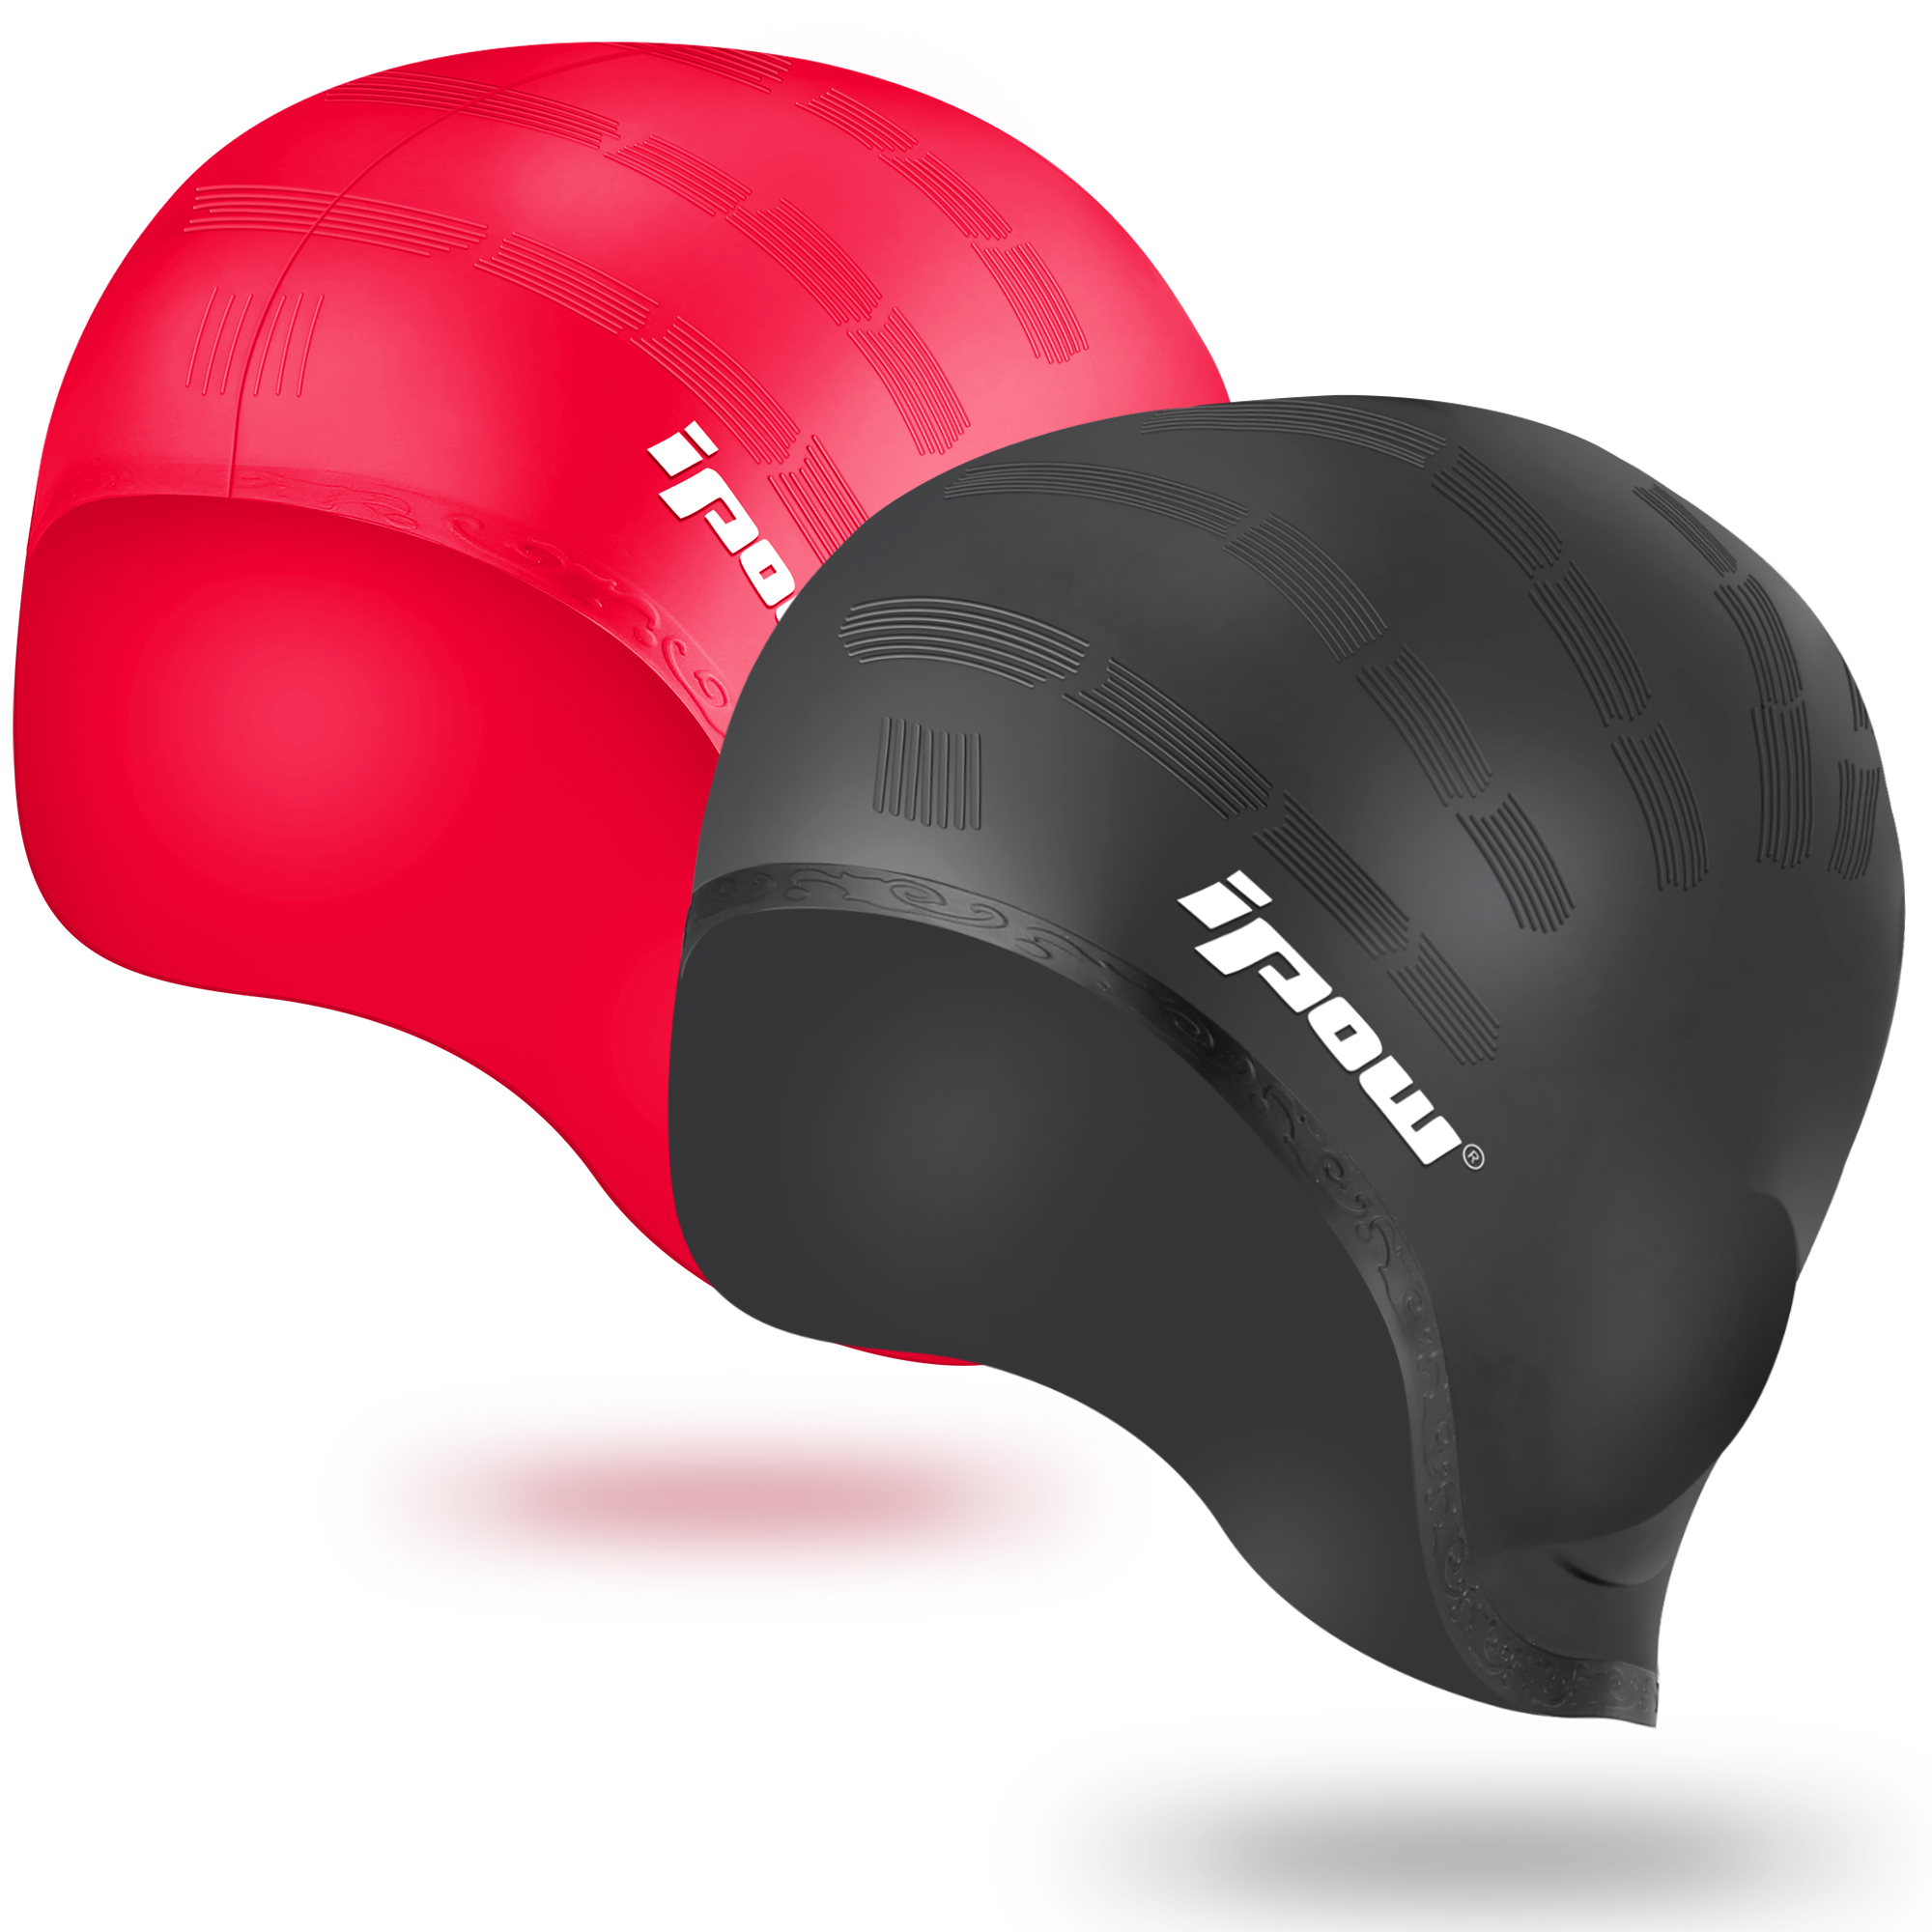 IPOW 2 Pack Swimming Cap Waterproof Unisex Earmuffs Silicone Non-slip Elastic Swim Cap for Adults Kids Women Men Boys Girls - Keeps Hair Clean Ear Dry with Ear Protection for Swimming, Black + Red